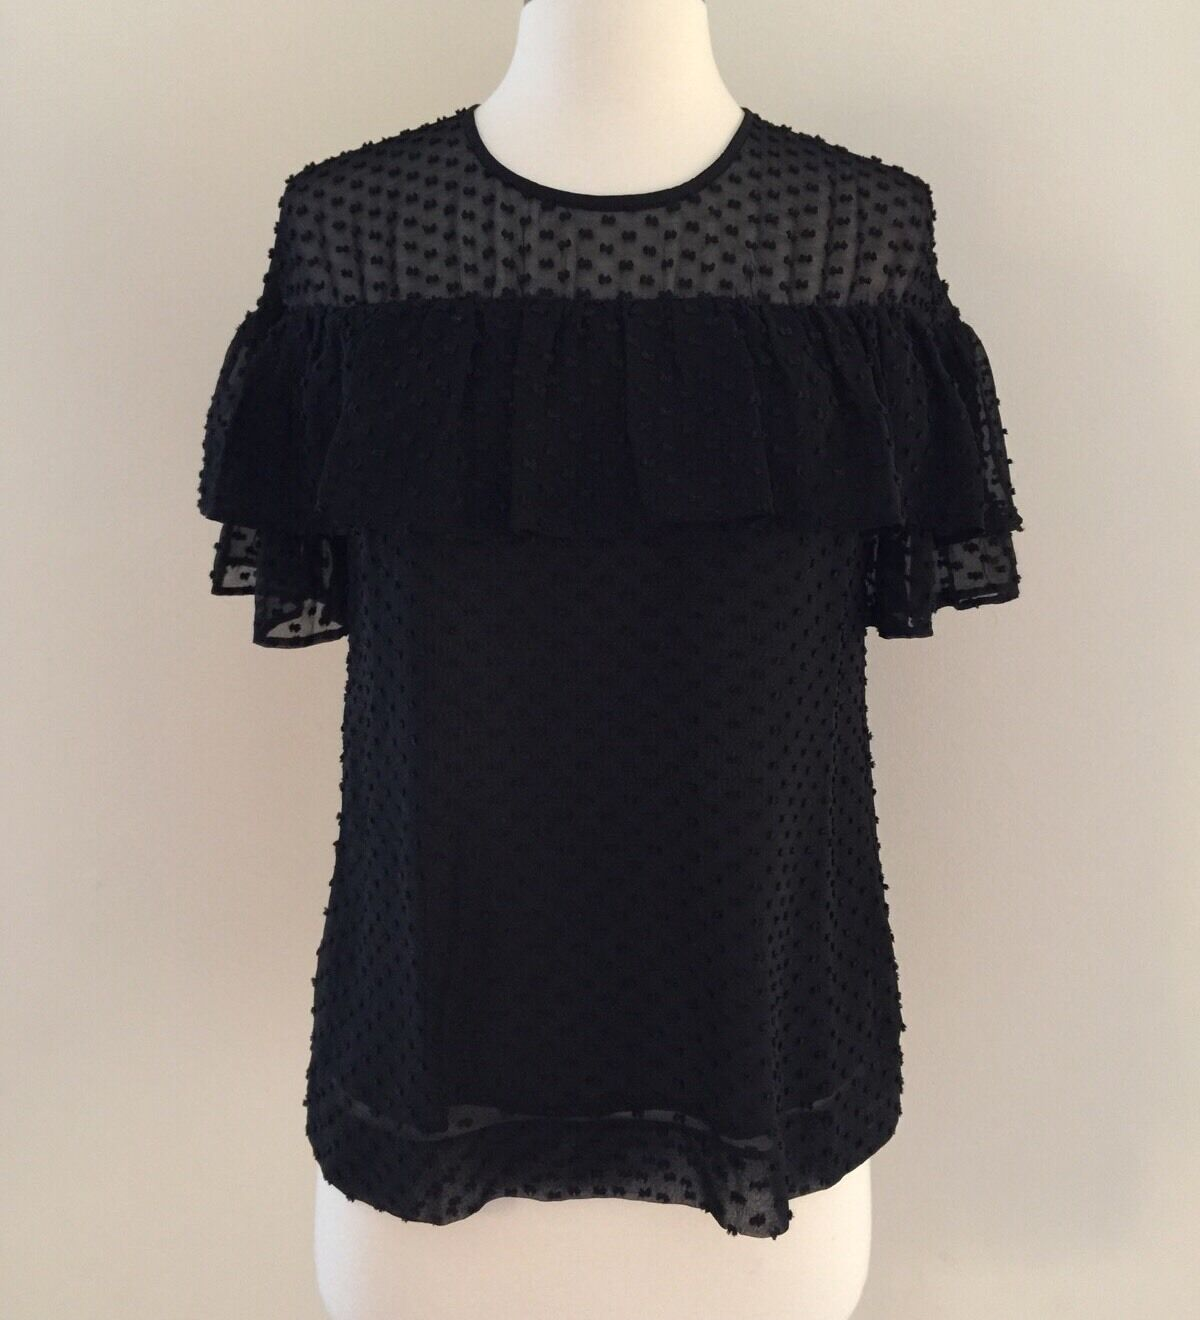 Nouveau Edie Top en Texturé Clip Dot Noir Taille 0 chemisier F8992  98 Sold out